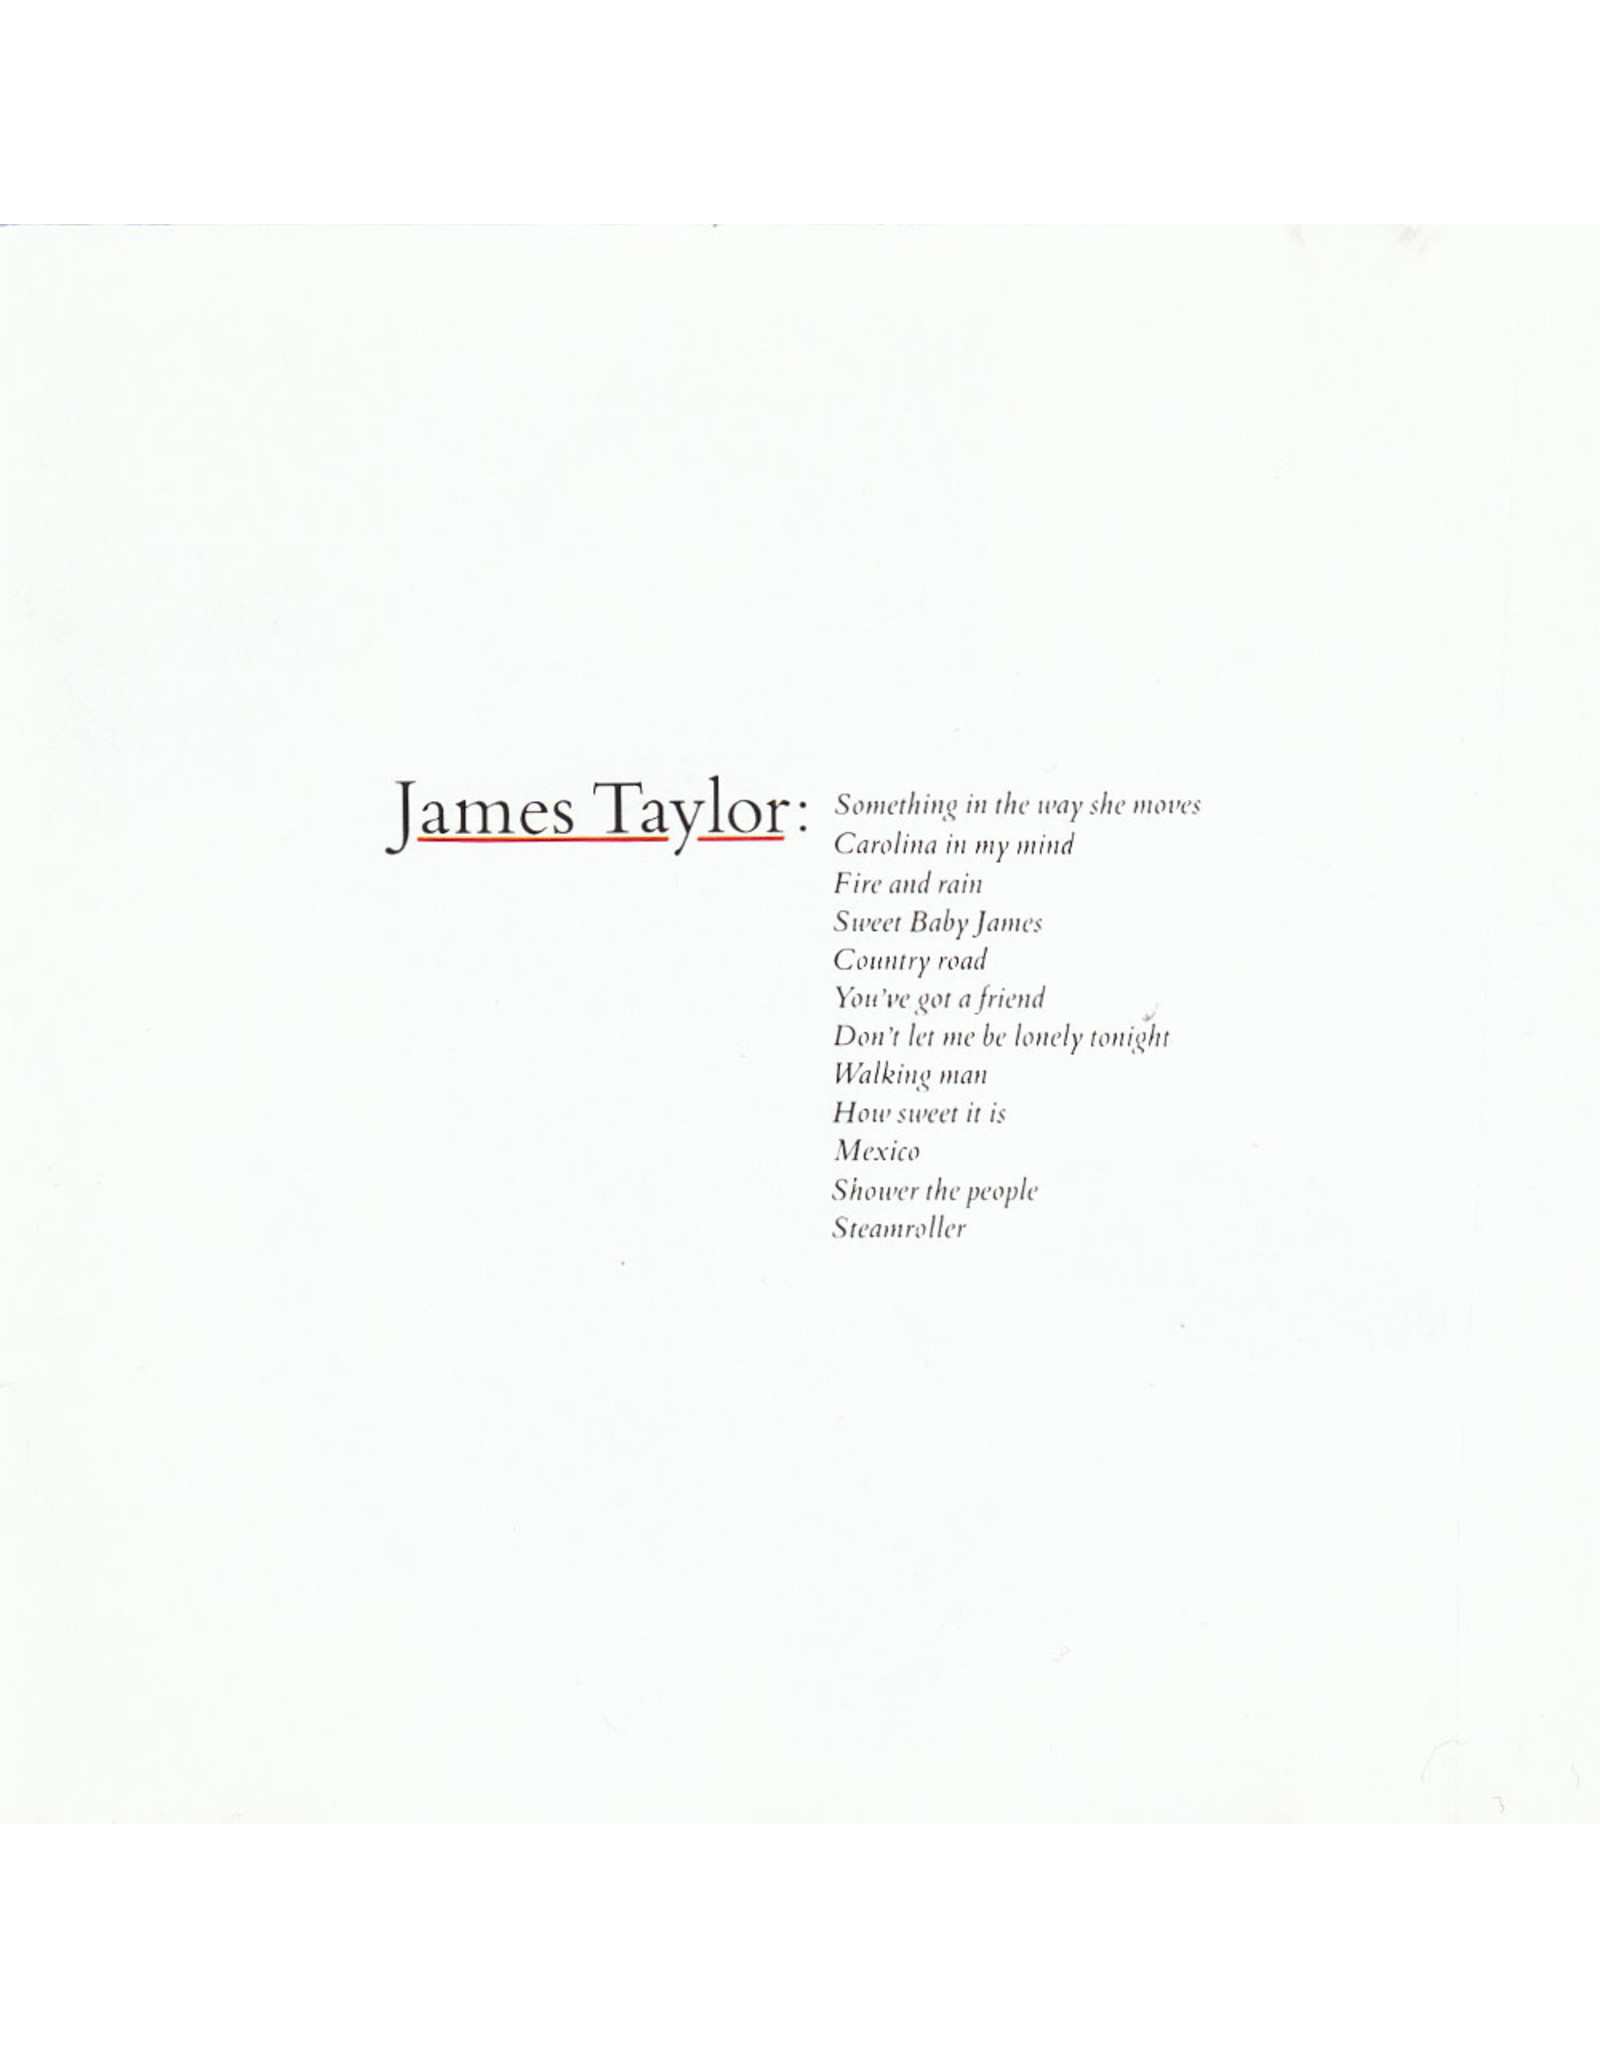 James Taylor - Greatest Hits (Peter Asher Remaster)